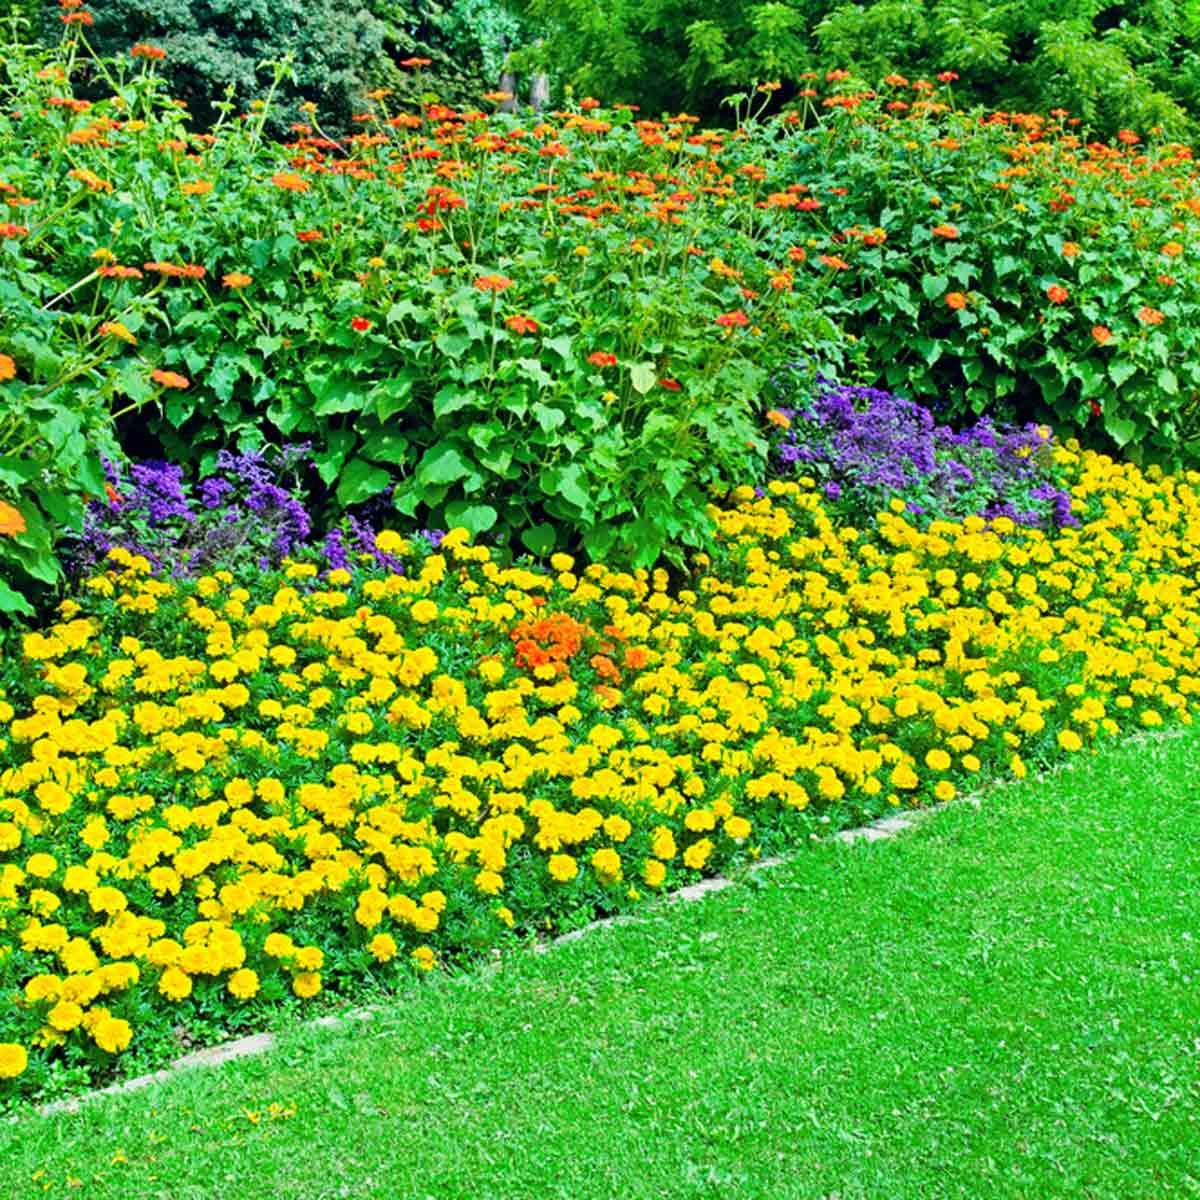 7 Affordable Landscaping Ideas For Under 1 000: 20 Cheap Landscaping Fixes That Look Expensive